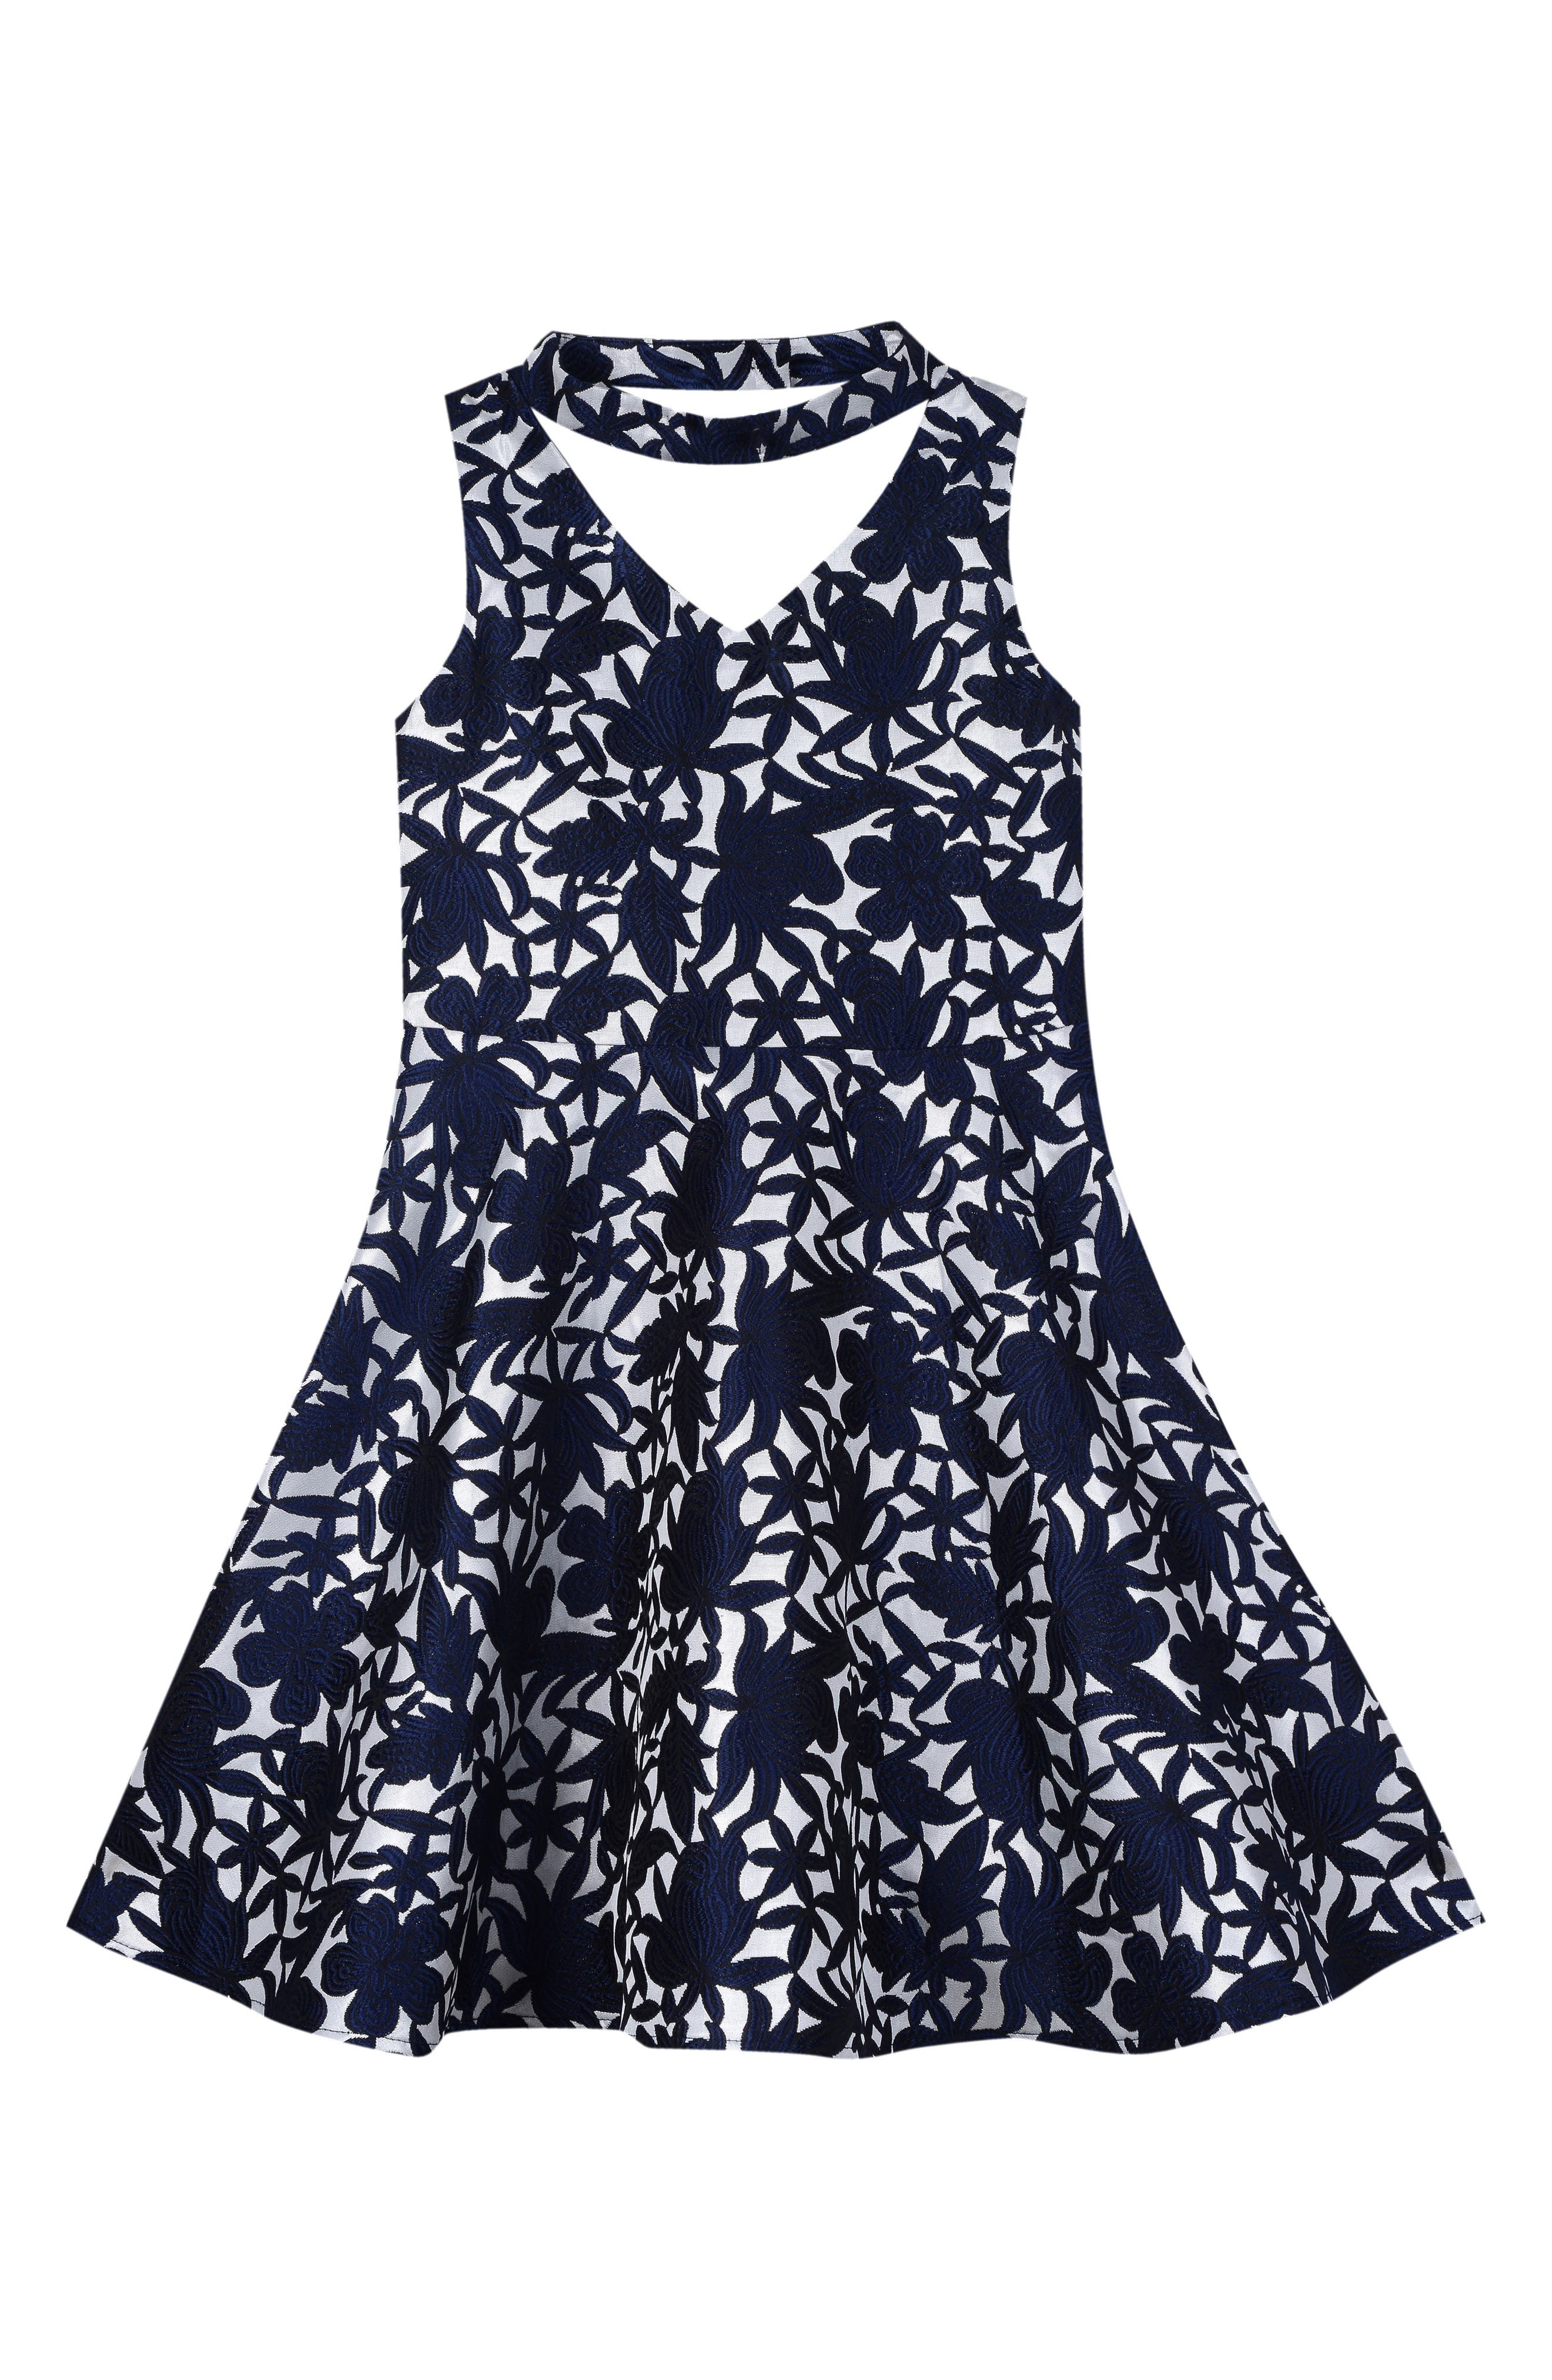 Floral Skater Dress,                             Main thumbnail 1, color,                             417